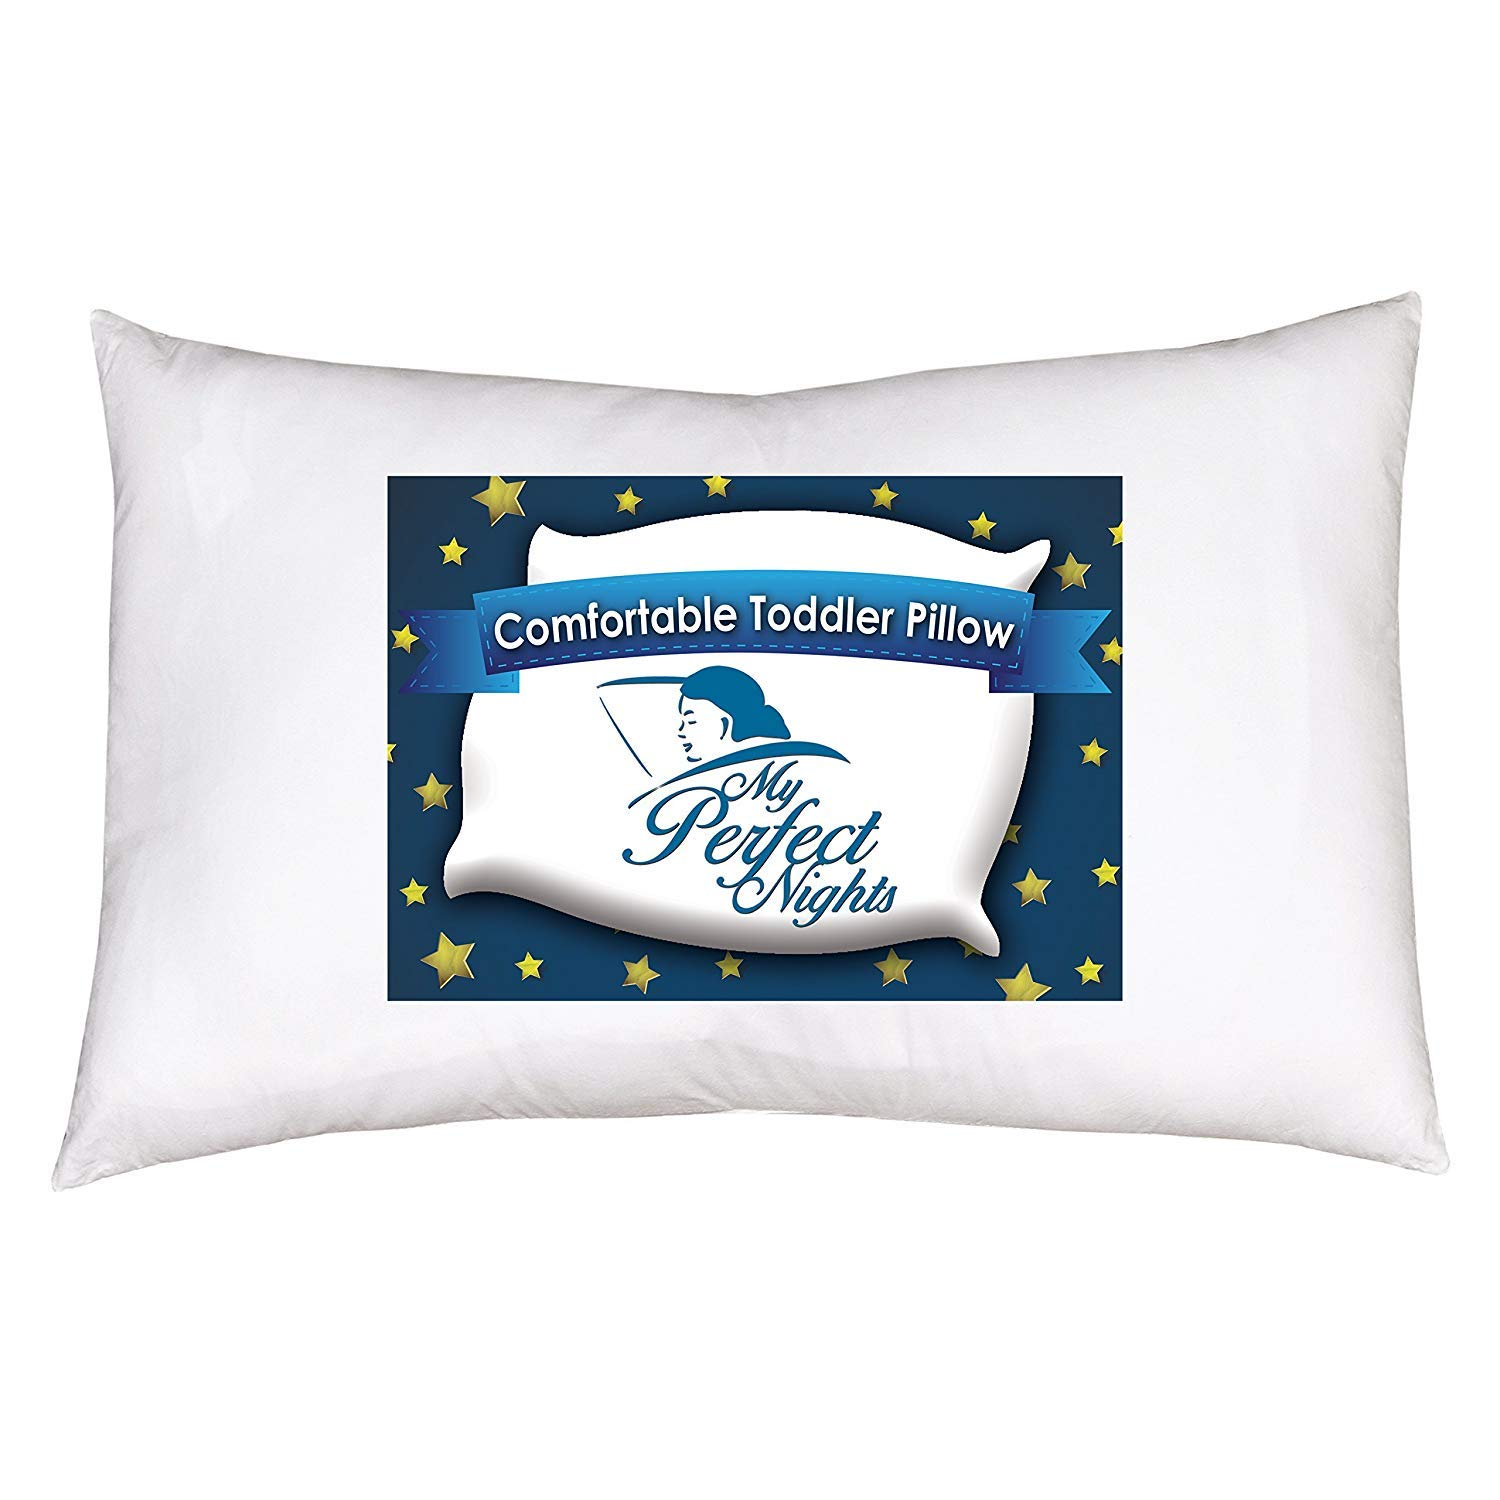 My Perfect Nights Toddler Pillow with Pillowcase 13 x 18 White